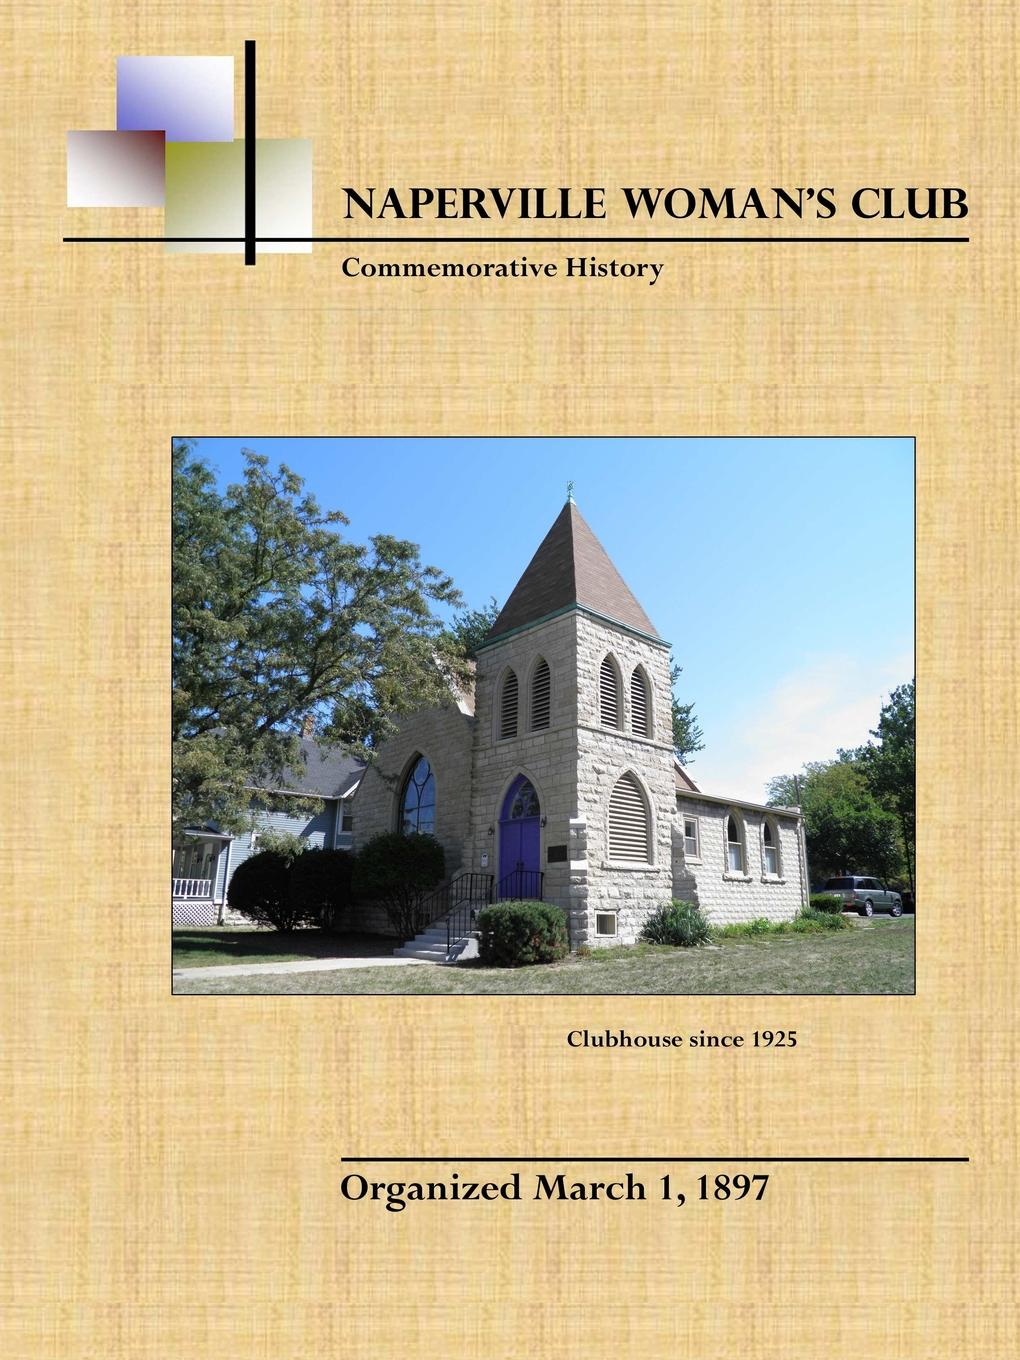 Naperville Woman's Club Naperville Woman.s Club Commemorative History, Second Edition geikie archibald annals of the royal society club the record of a london dining club in the eighteenth nineteenth centuries